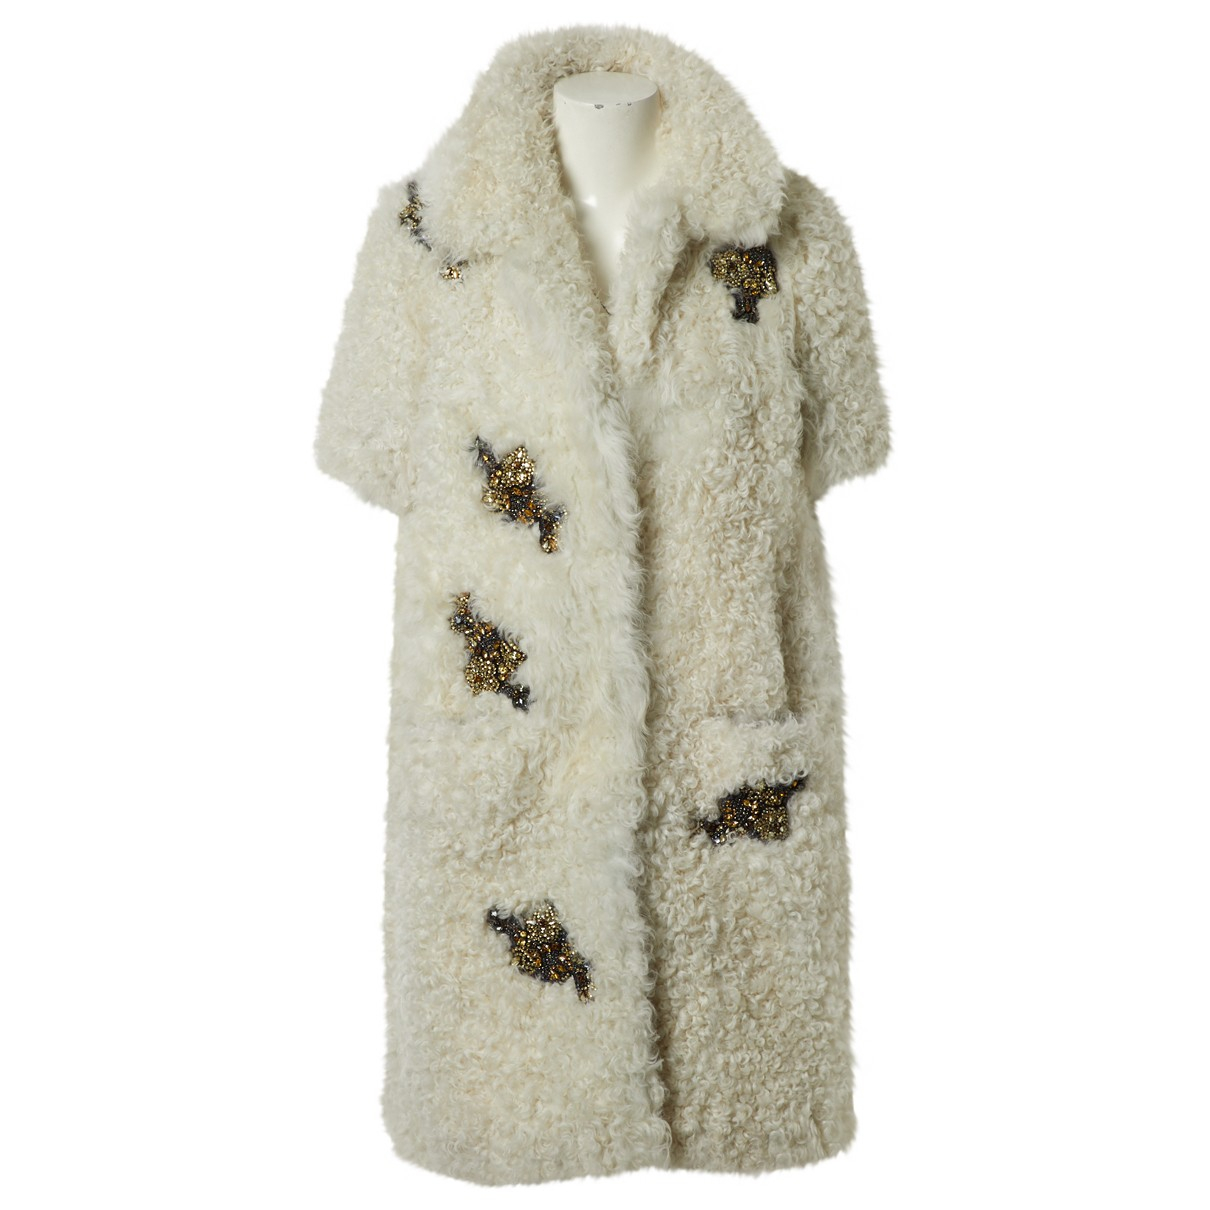 Erdem \N Ecru Shearling coat for Women 12 UK